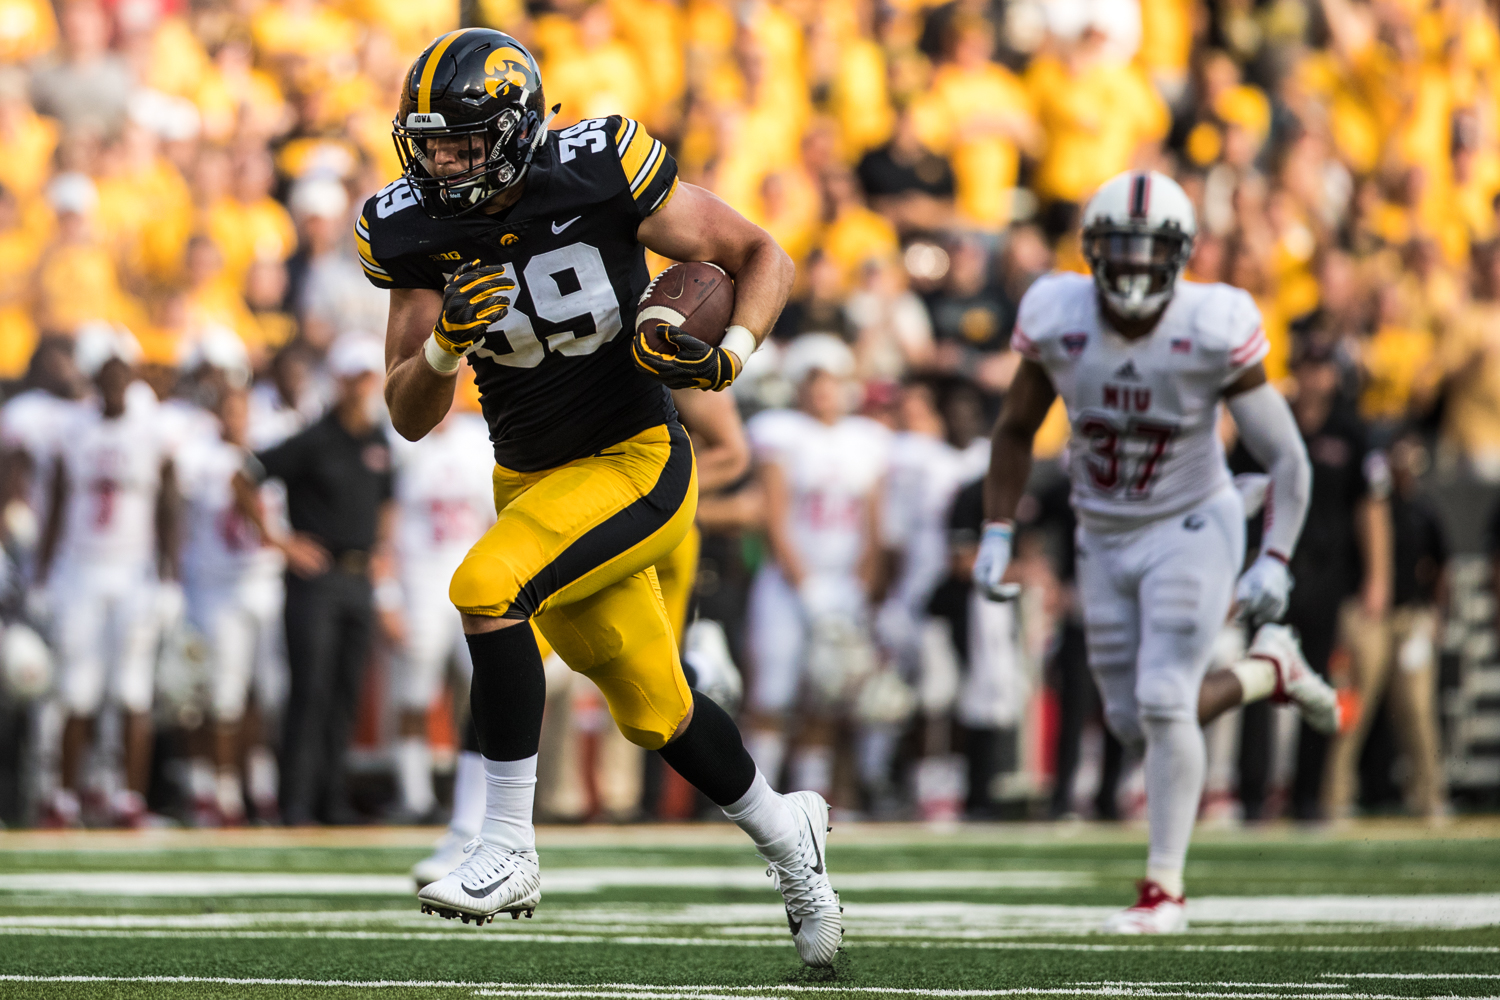 Iowa tight end Nate Wieting runs after a catch during Iowa's game against Northern Illinois at Kinnick Stadium on Saturday, September 1, 2018. during Iowa's game against Northern Illinois at Kinnick Stadium on Saturday, September 1, 2018. The Hawkeyes defeated the Huskies 33-7.